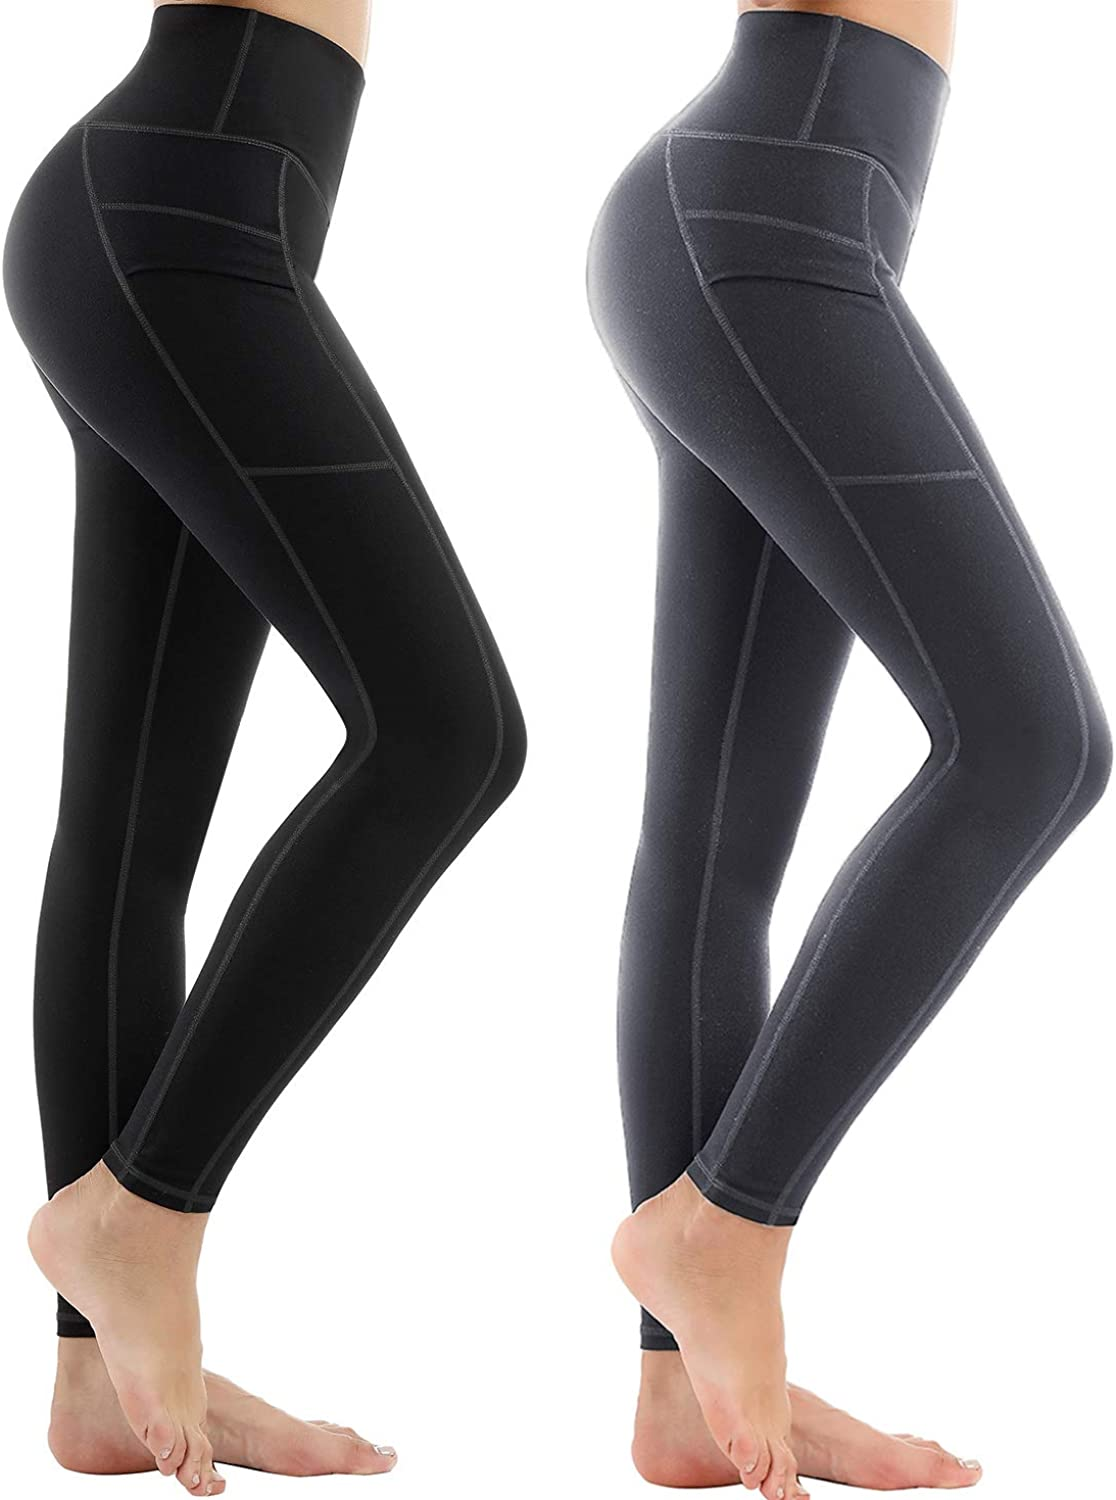 LifeSky High Waist Yoga Pants with Pockets Tummy Control 4 Way Stretch Workout Pants Womens' Active Leggings  Black & Grey